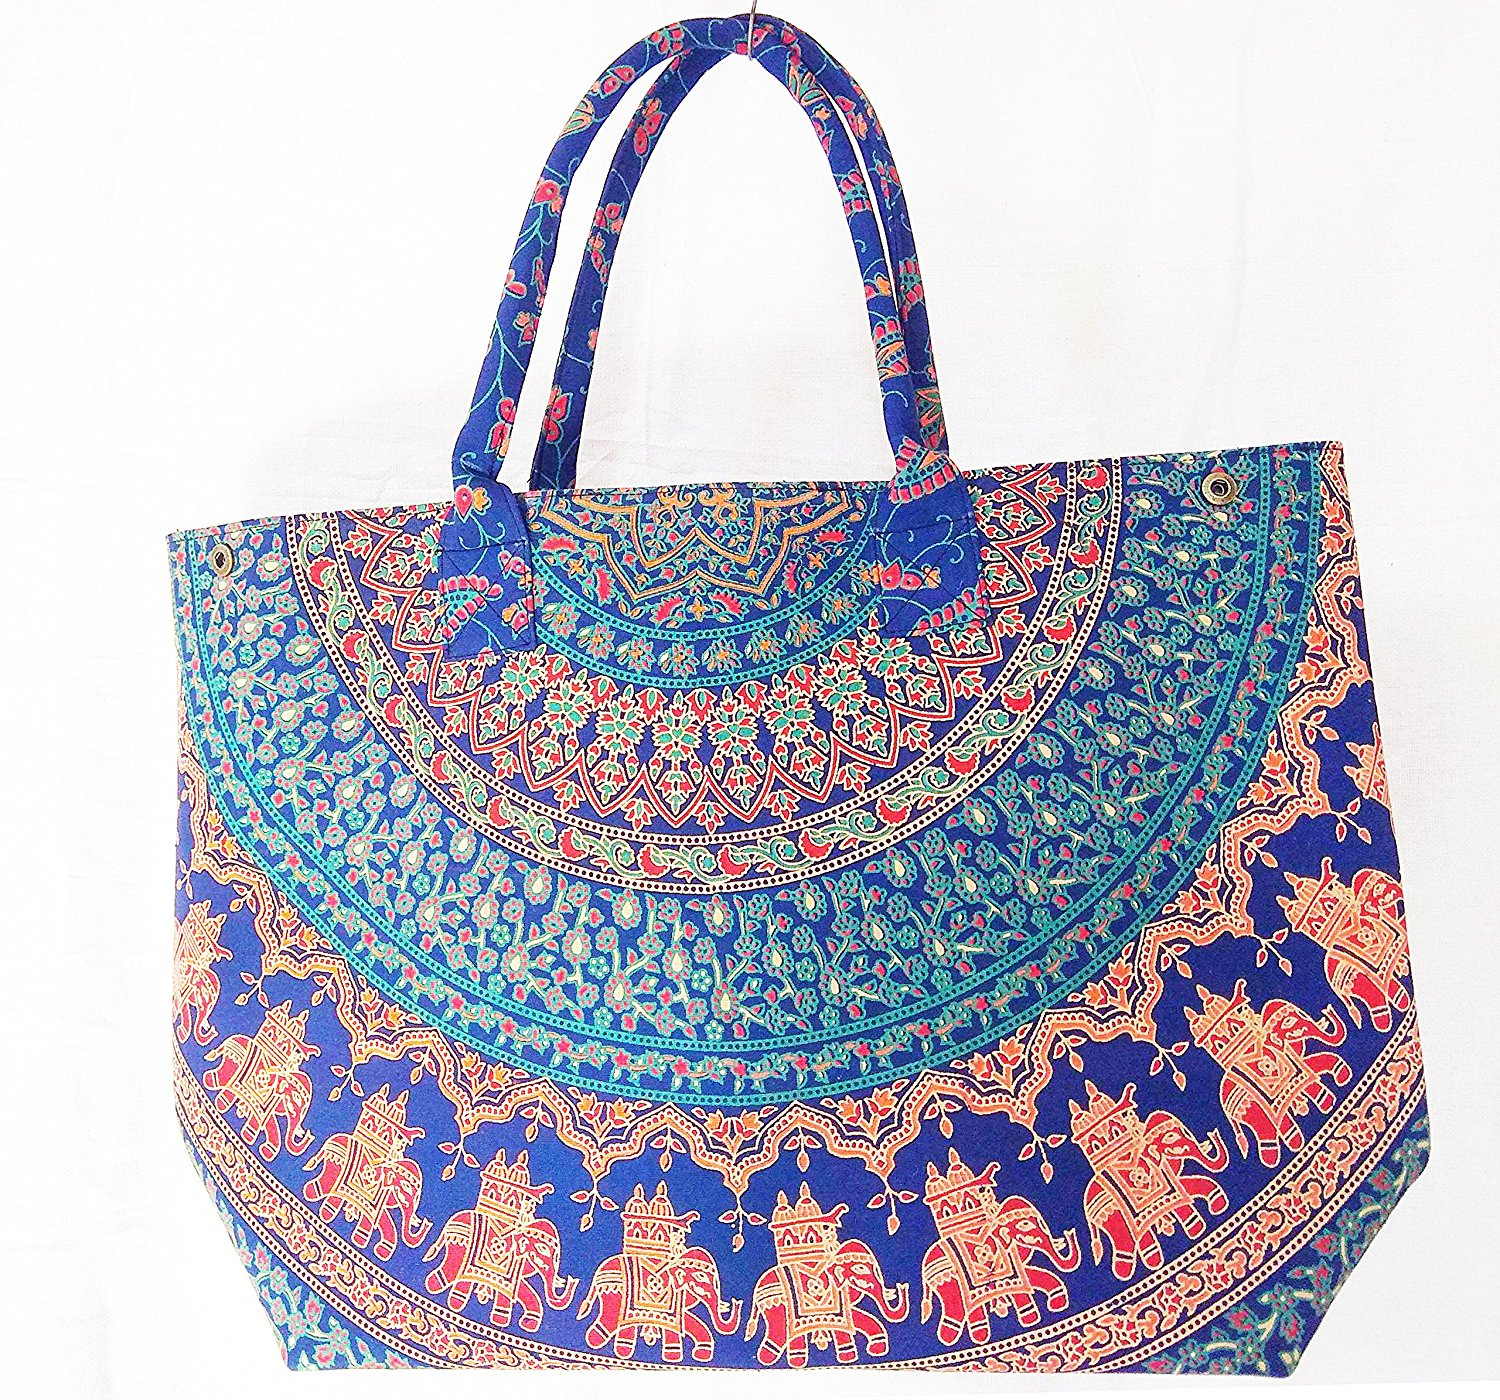 fde0b6925 Get Quotations · Indian Hippie Psychedelic Bohemian Tapestry Cotton Mandala  Designer Floral Bags For Women Handmade Boho Hobo Tote